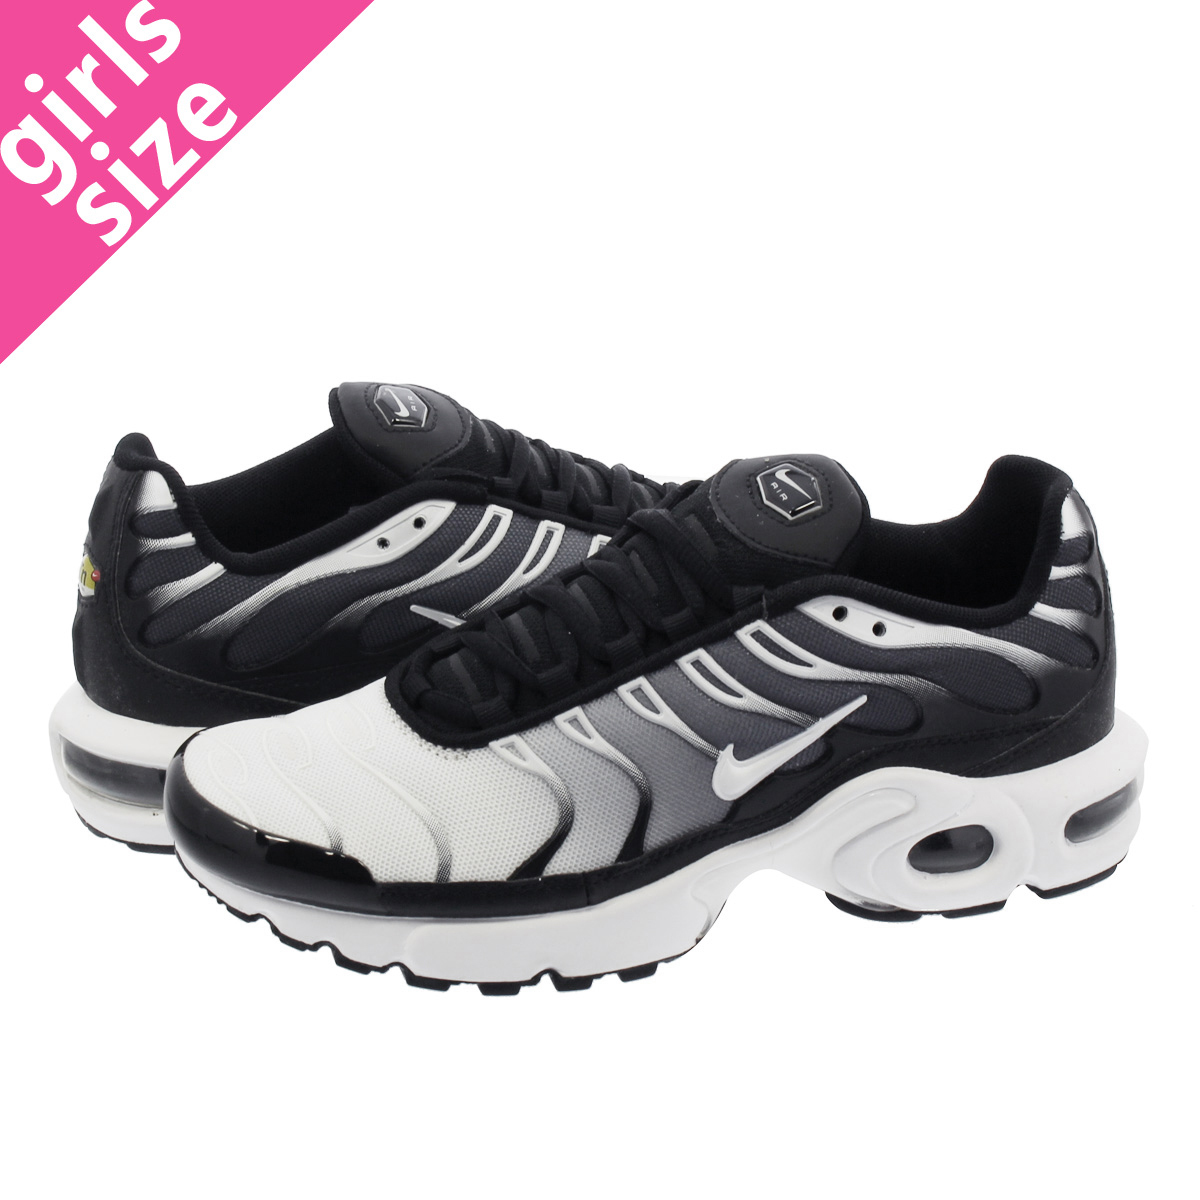 good out x huge selection of save off NIKE AIR MAX PLUS GS Kie Ney AMAX plus GS GREY/WHITE/BLACK 655,020-077